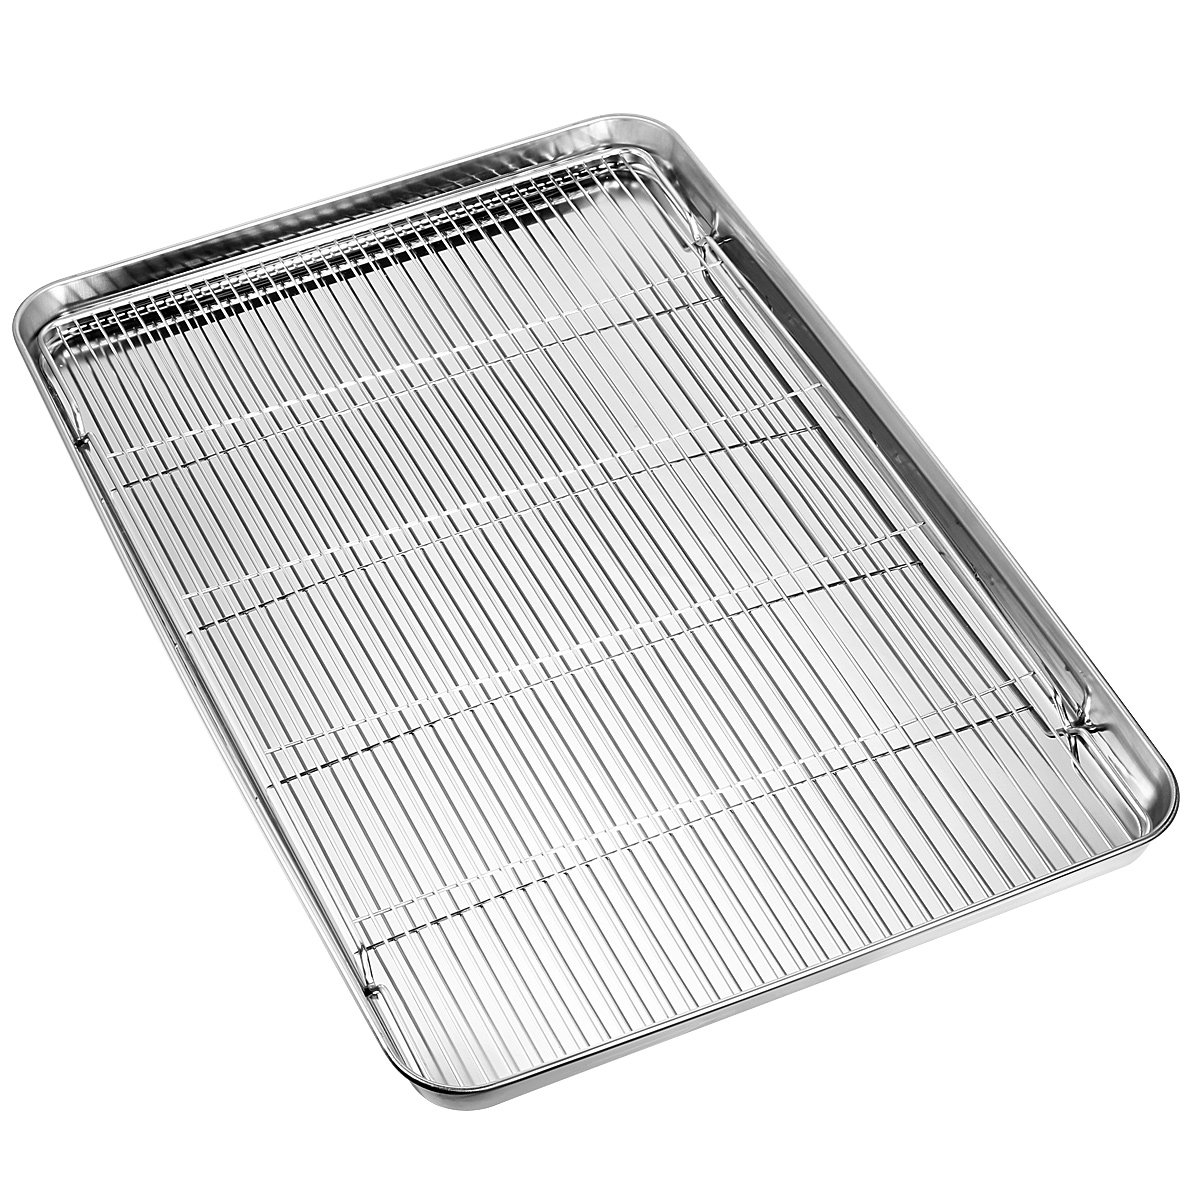 Large Baking Sheets with Rack Set, HKJ Chef Cookie sheet and Nonstick Cooling Rack & Stainless Steel Baking Pans & Toaster Oven Tray Pan Rectangle Size 24L x 16W x 1H inch & Non Toxic & Healthy